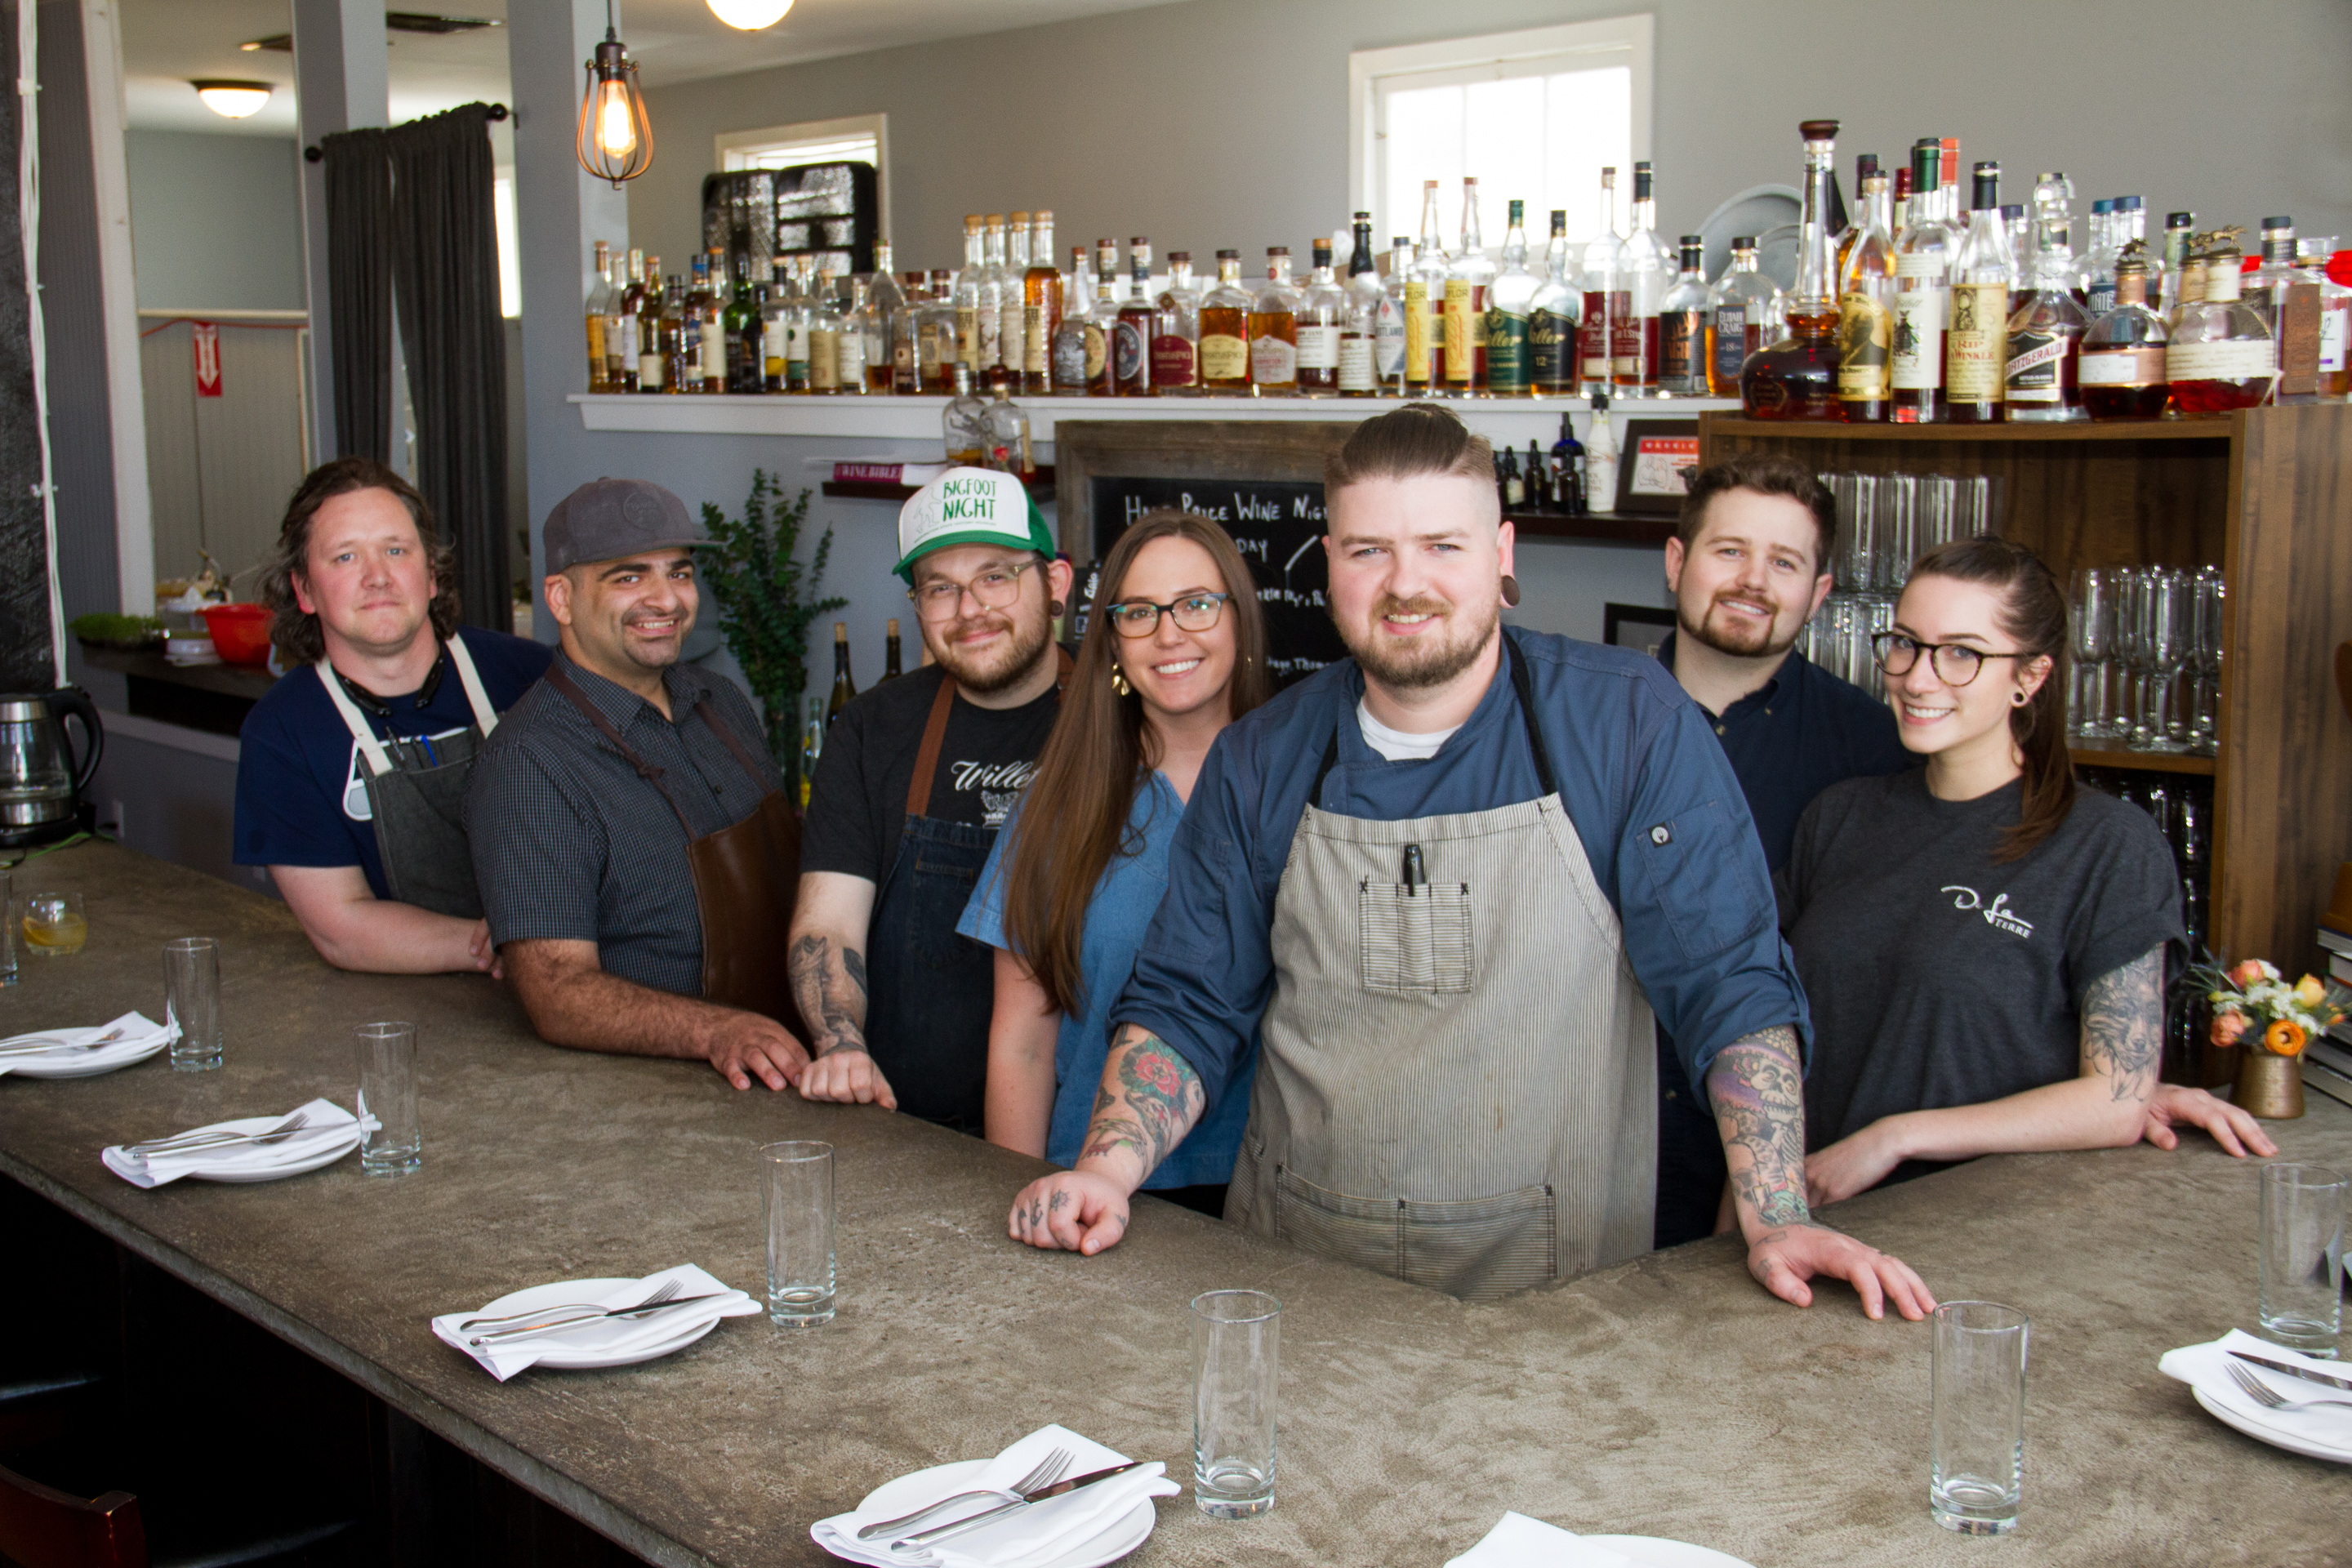 The De La Terre Team poses behind the bar for a group photo.